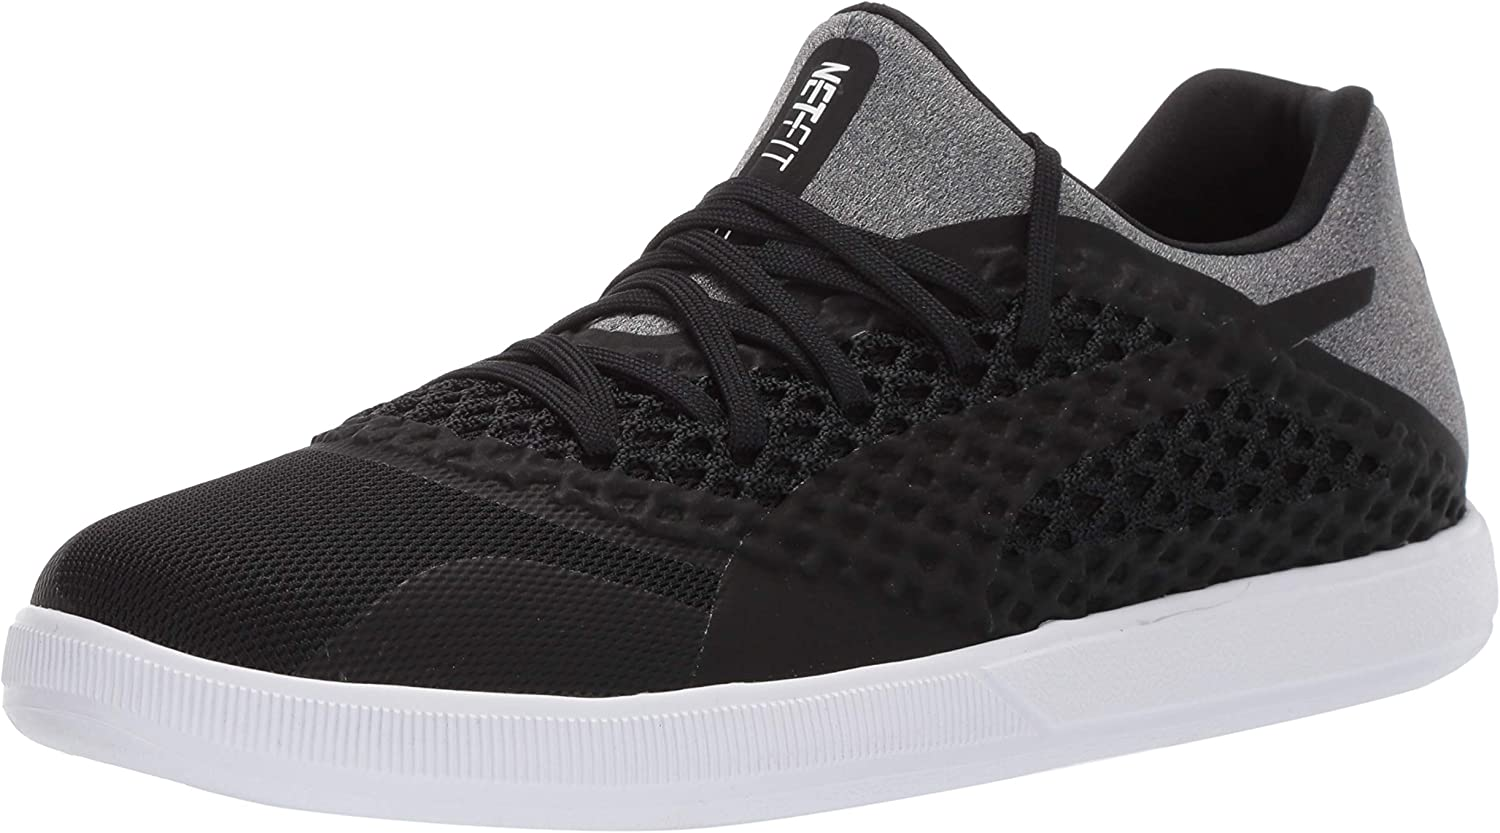 depositar Lágrima suicidio  Amazon.com | PUMA Men's 365 Netfit Lite Futsal-Shoe | Fashion Sneakers